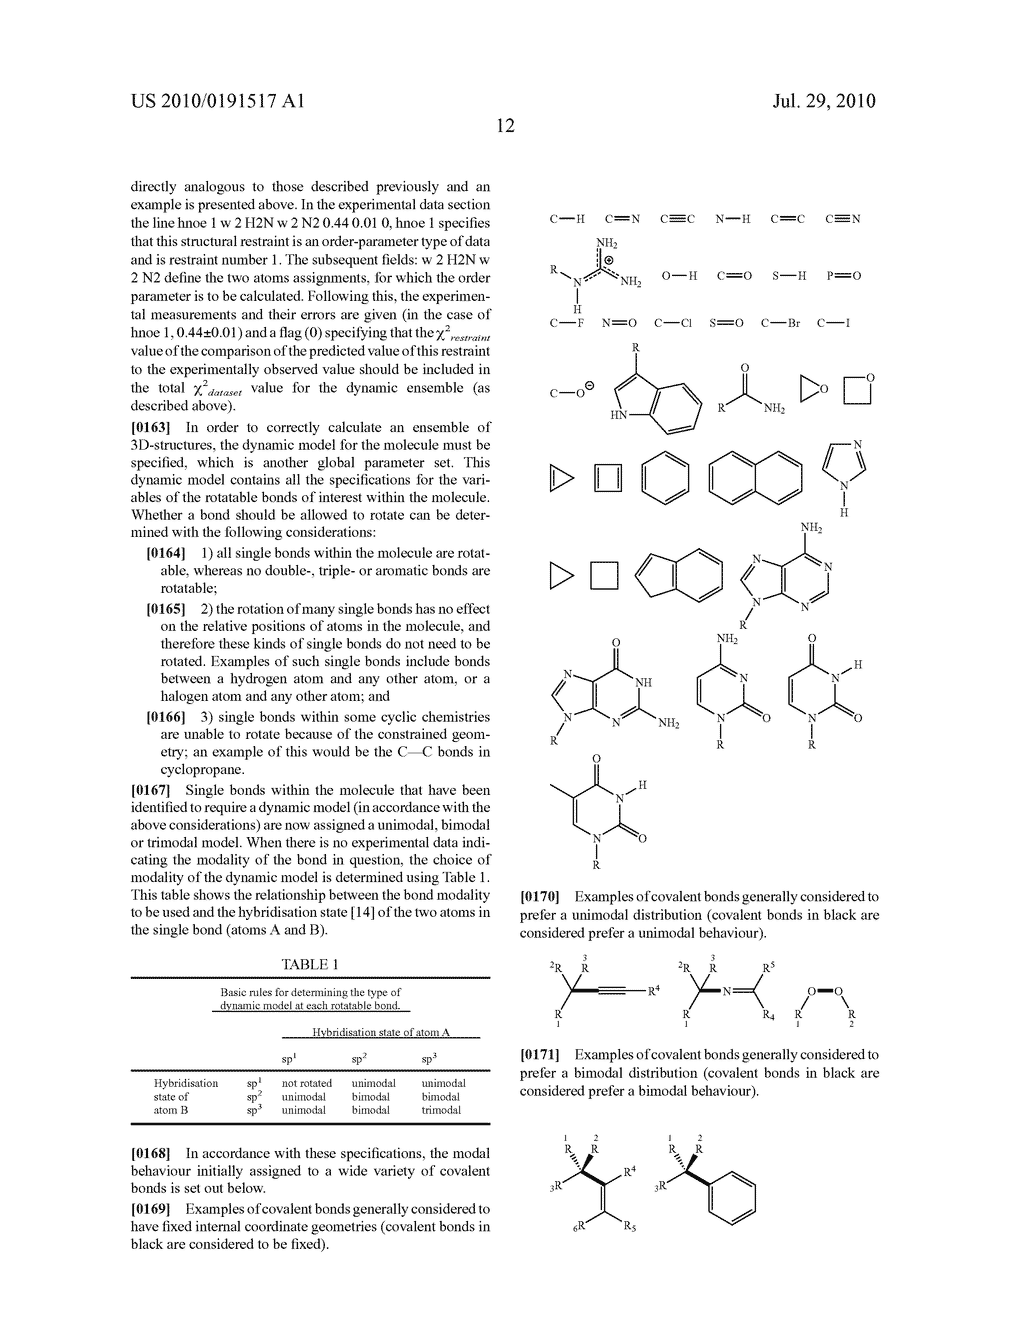 METHOD FOR DETERMINING THREE-DIMENSIONAL STRUCTURES OF DYNAMIC MOLECULES - diagram, schematic, and image 32